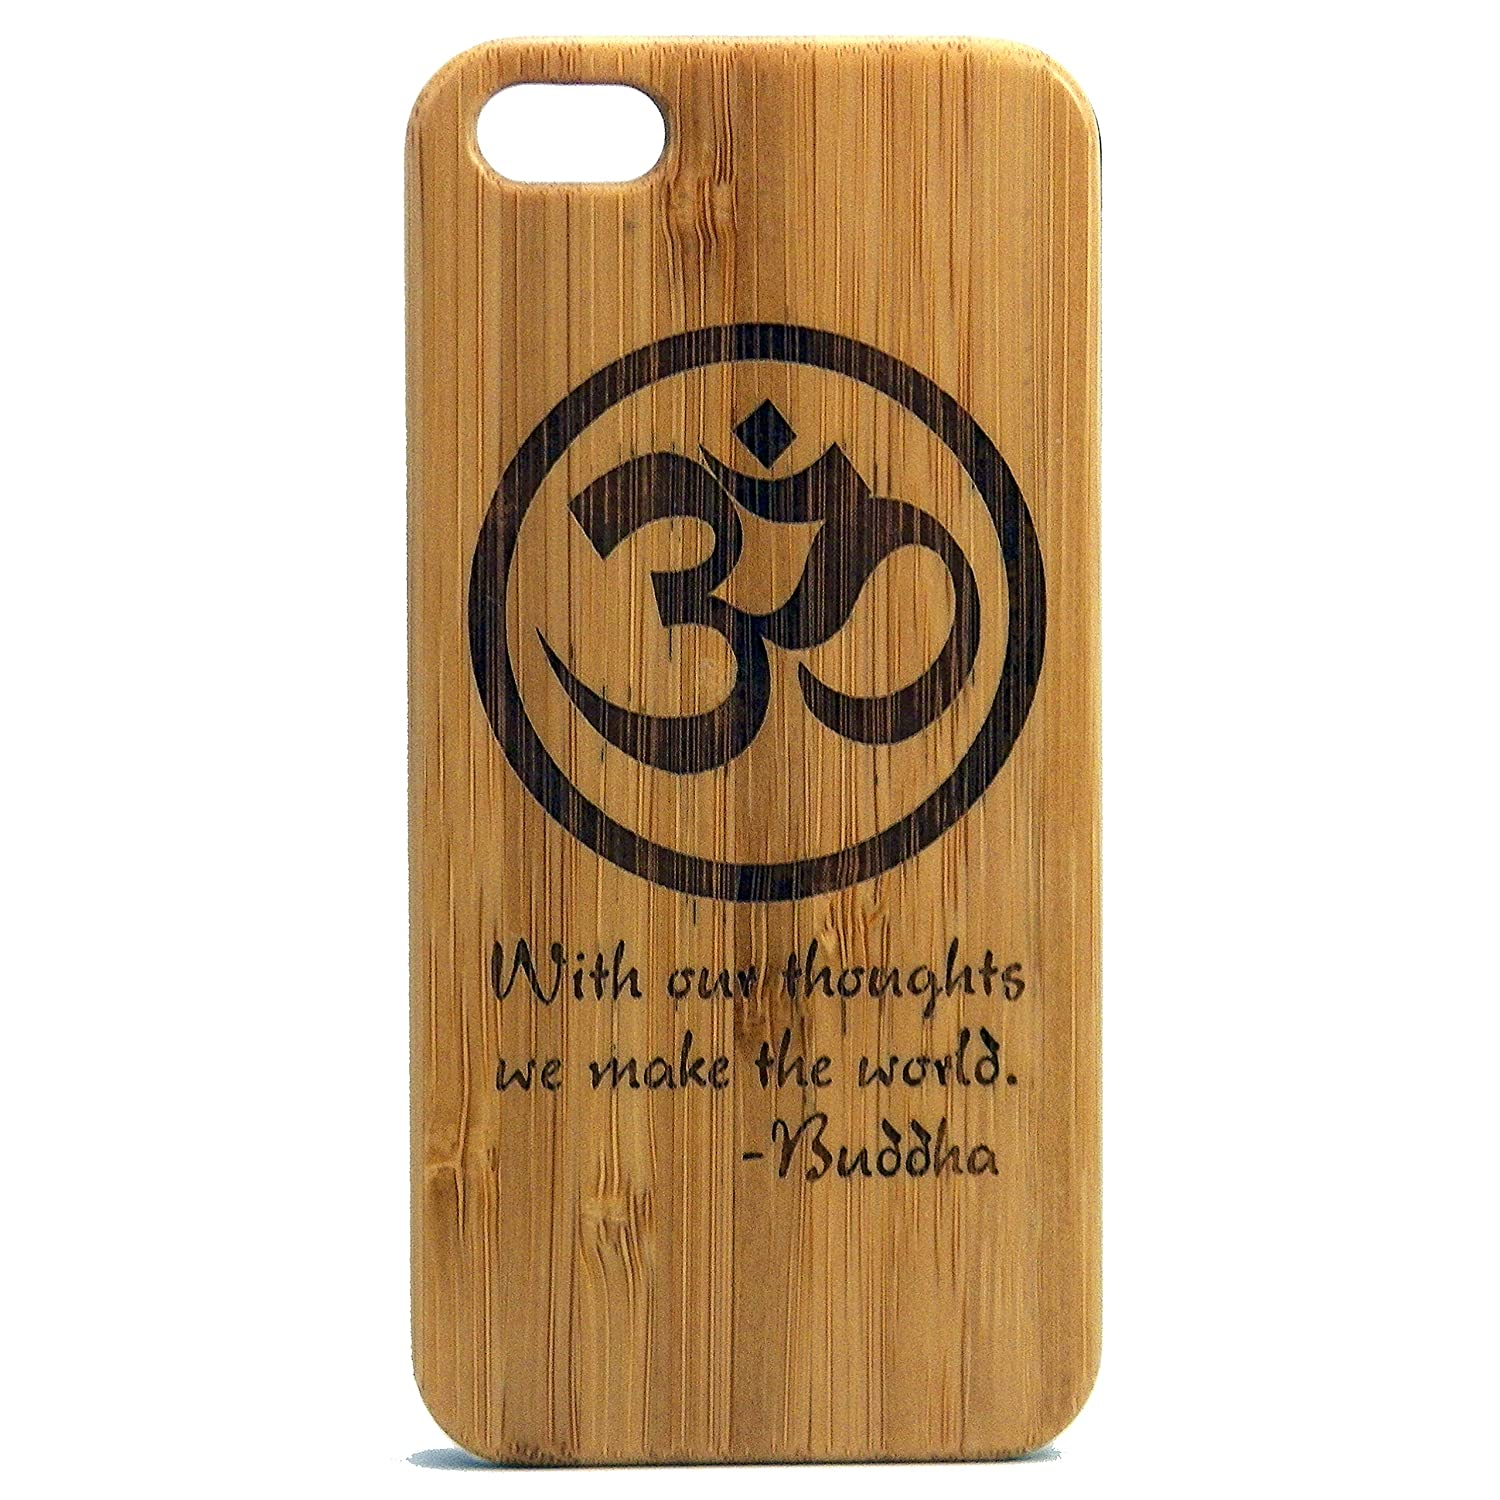 Amazon om buddha quote iphone se iphone 5 or iphone 5s case amazon om buddha quote iphone se iphone 5 or iphone 5s casecover by imakethecase with our thoughts we make the world eco friendly bamboo wood buycottarizona